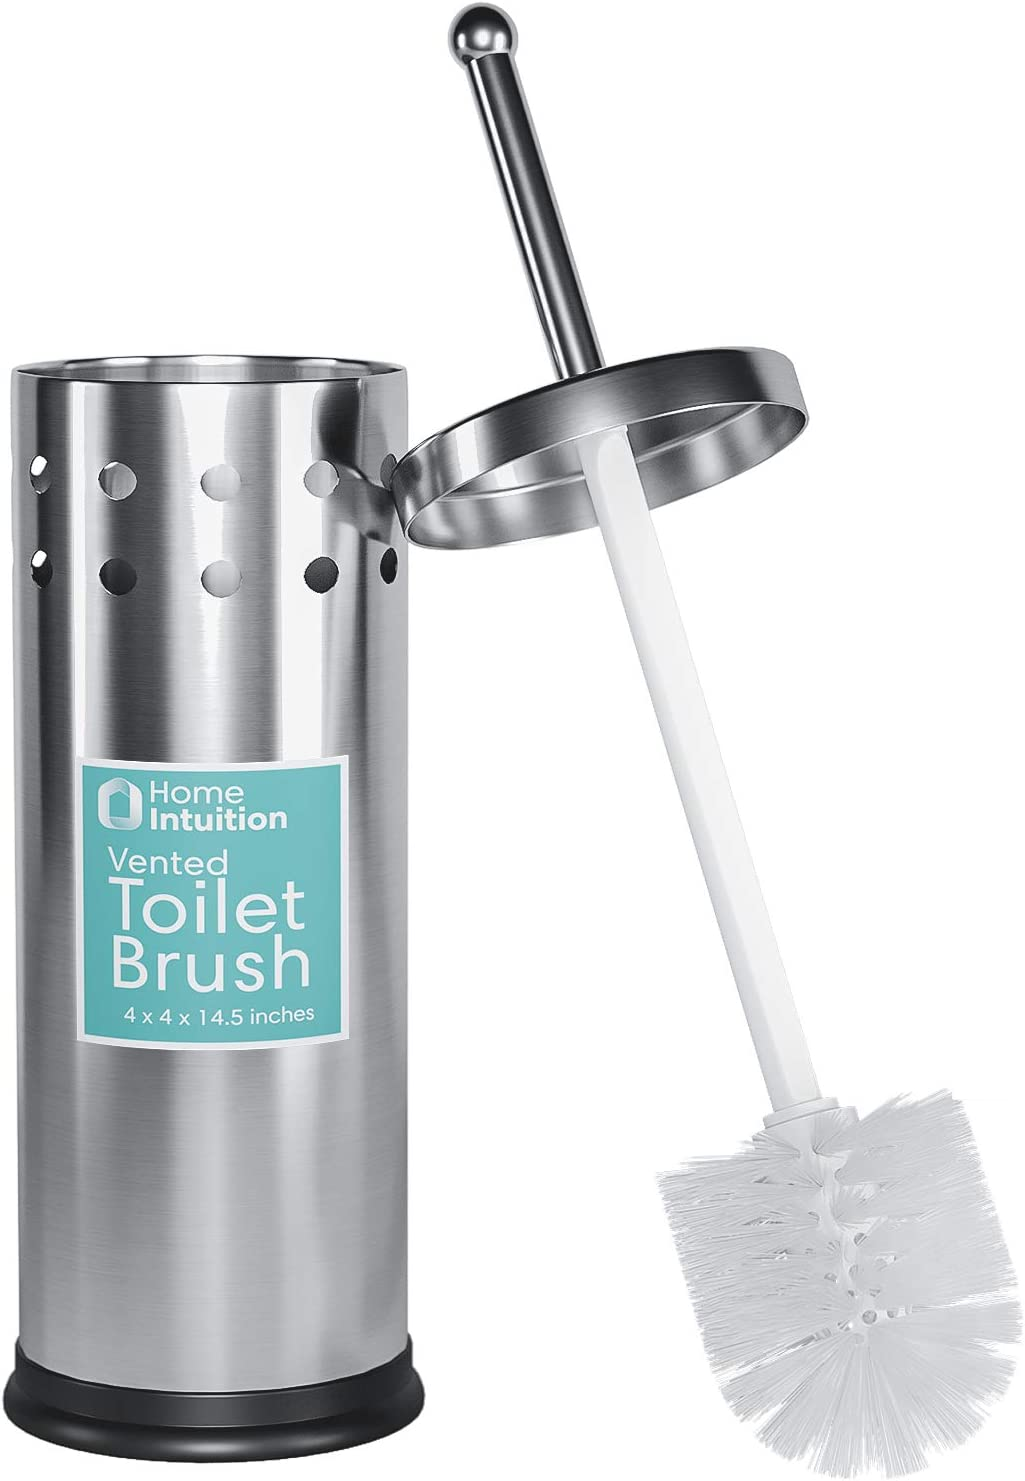 Home Intuition Stainless Steel Vented Toilet Brush and Holder, 1 Pack